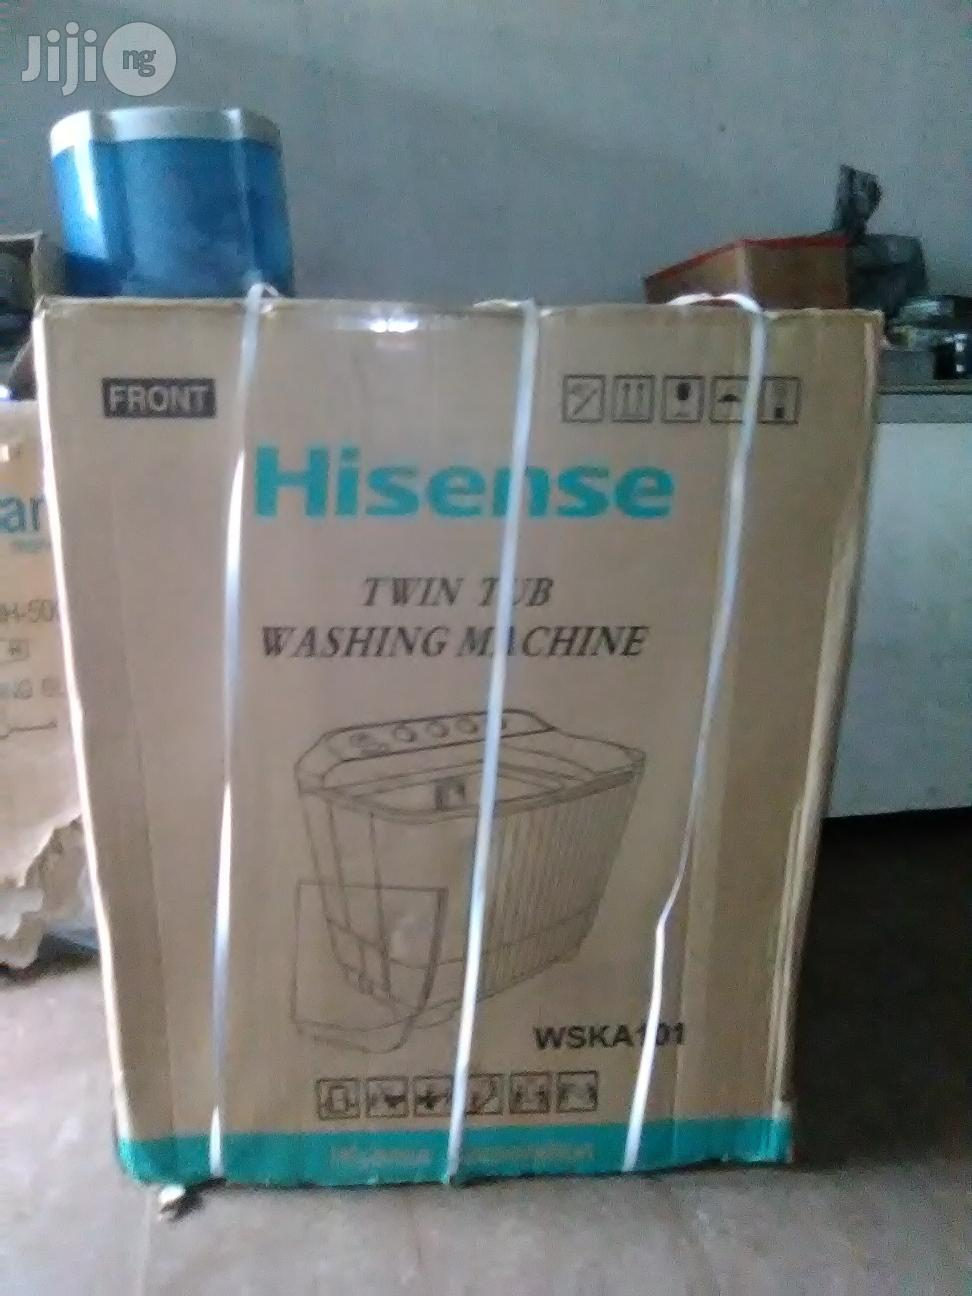 Hisense 10kg Washing and Spinning Machine | Home Appliances for sale in Ajah, Lagos State, Nigeria